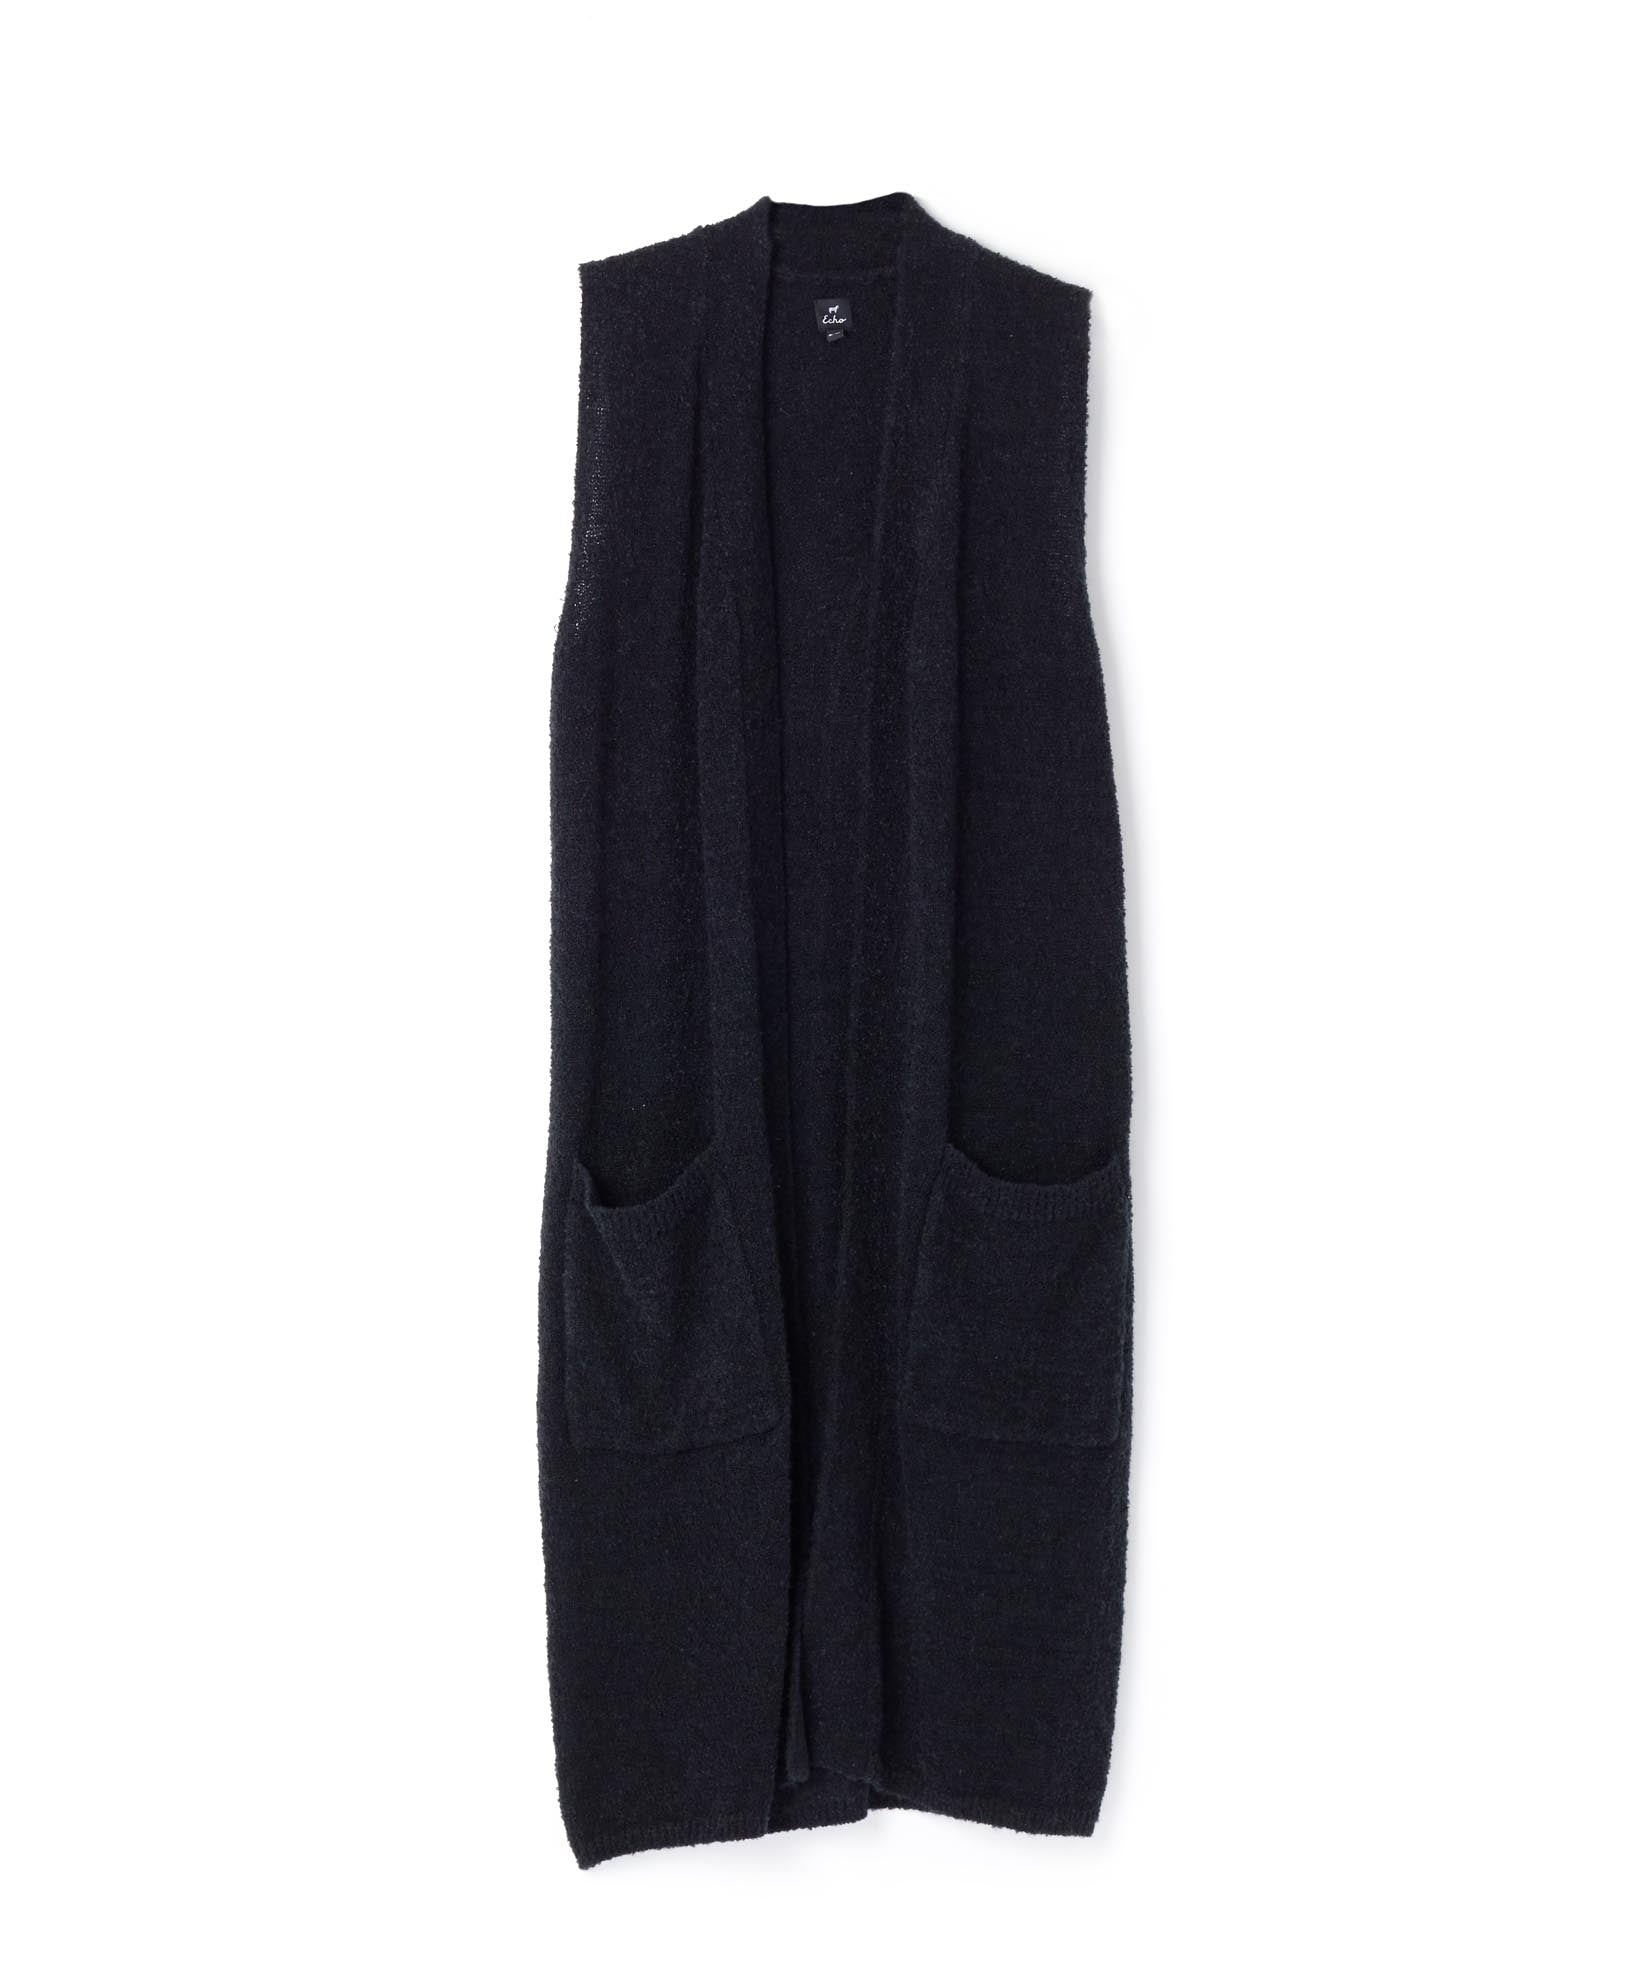 Black - Knit Cross Over Vest